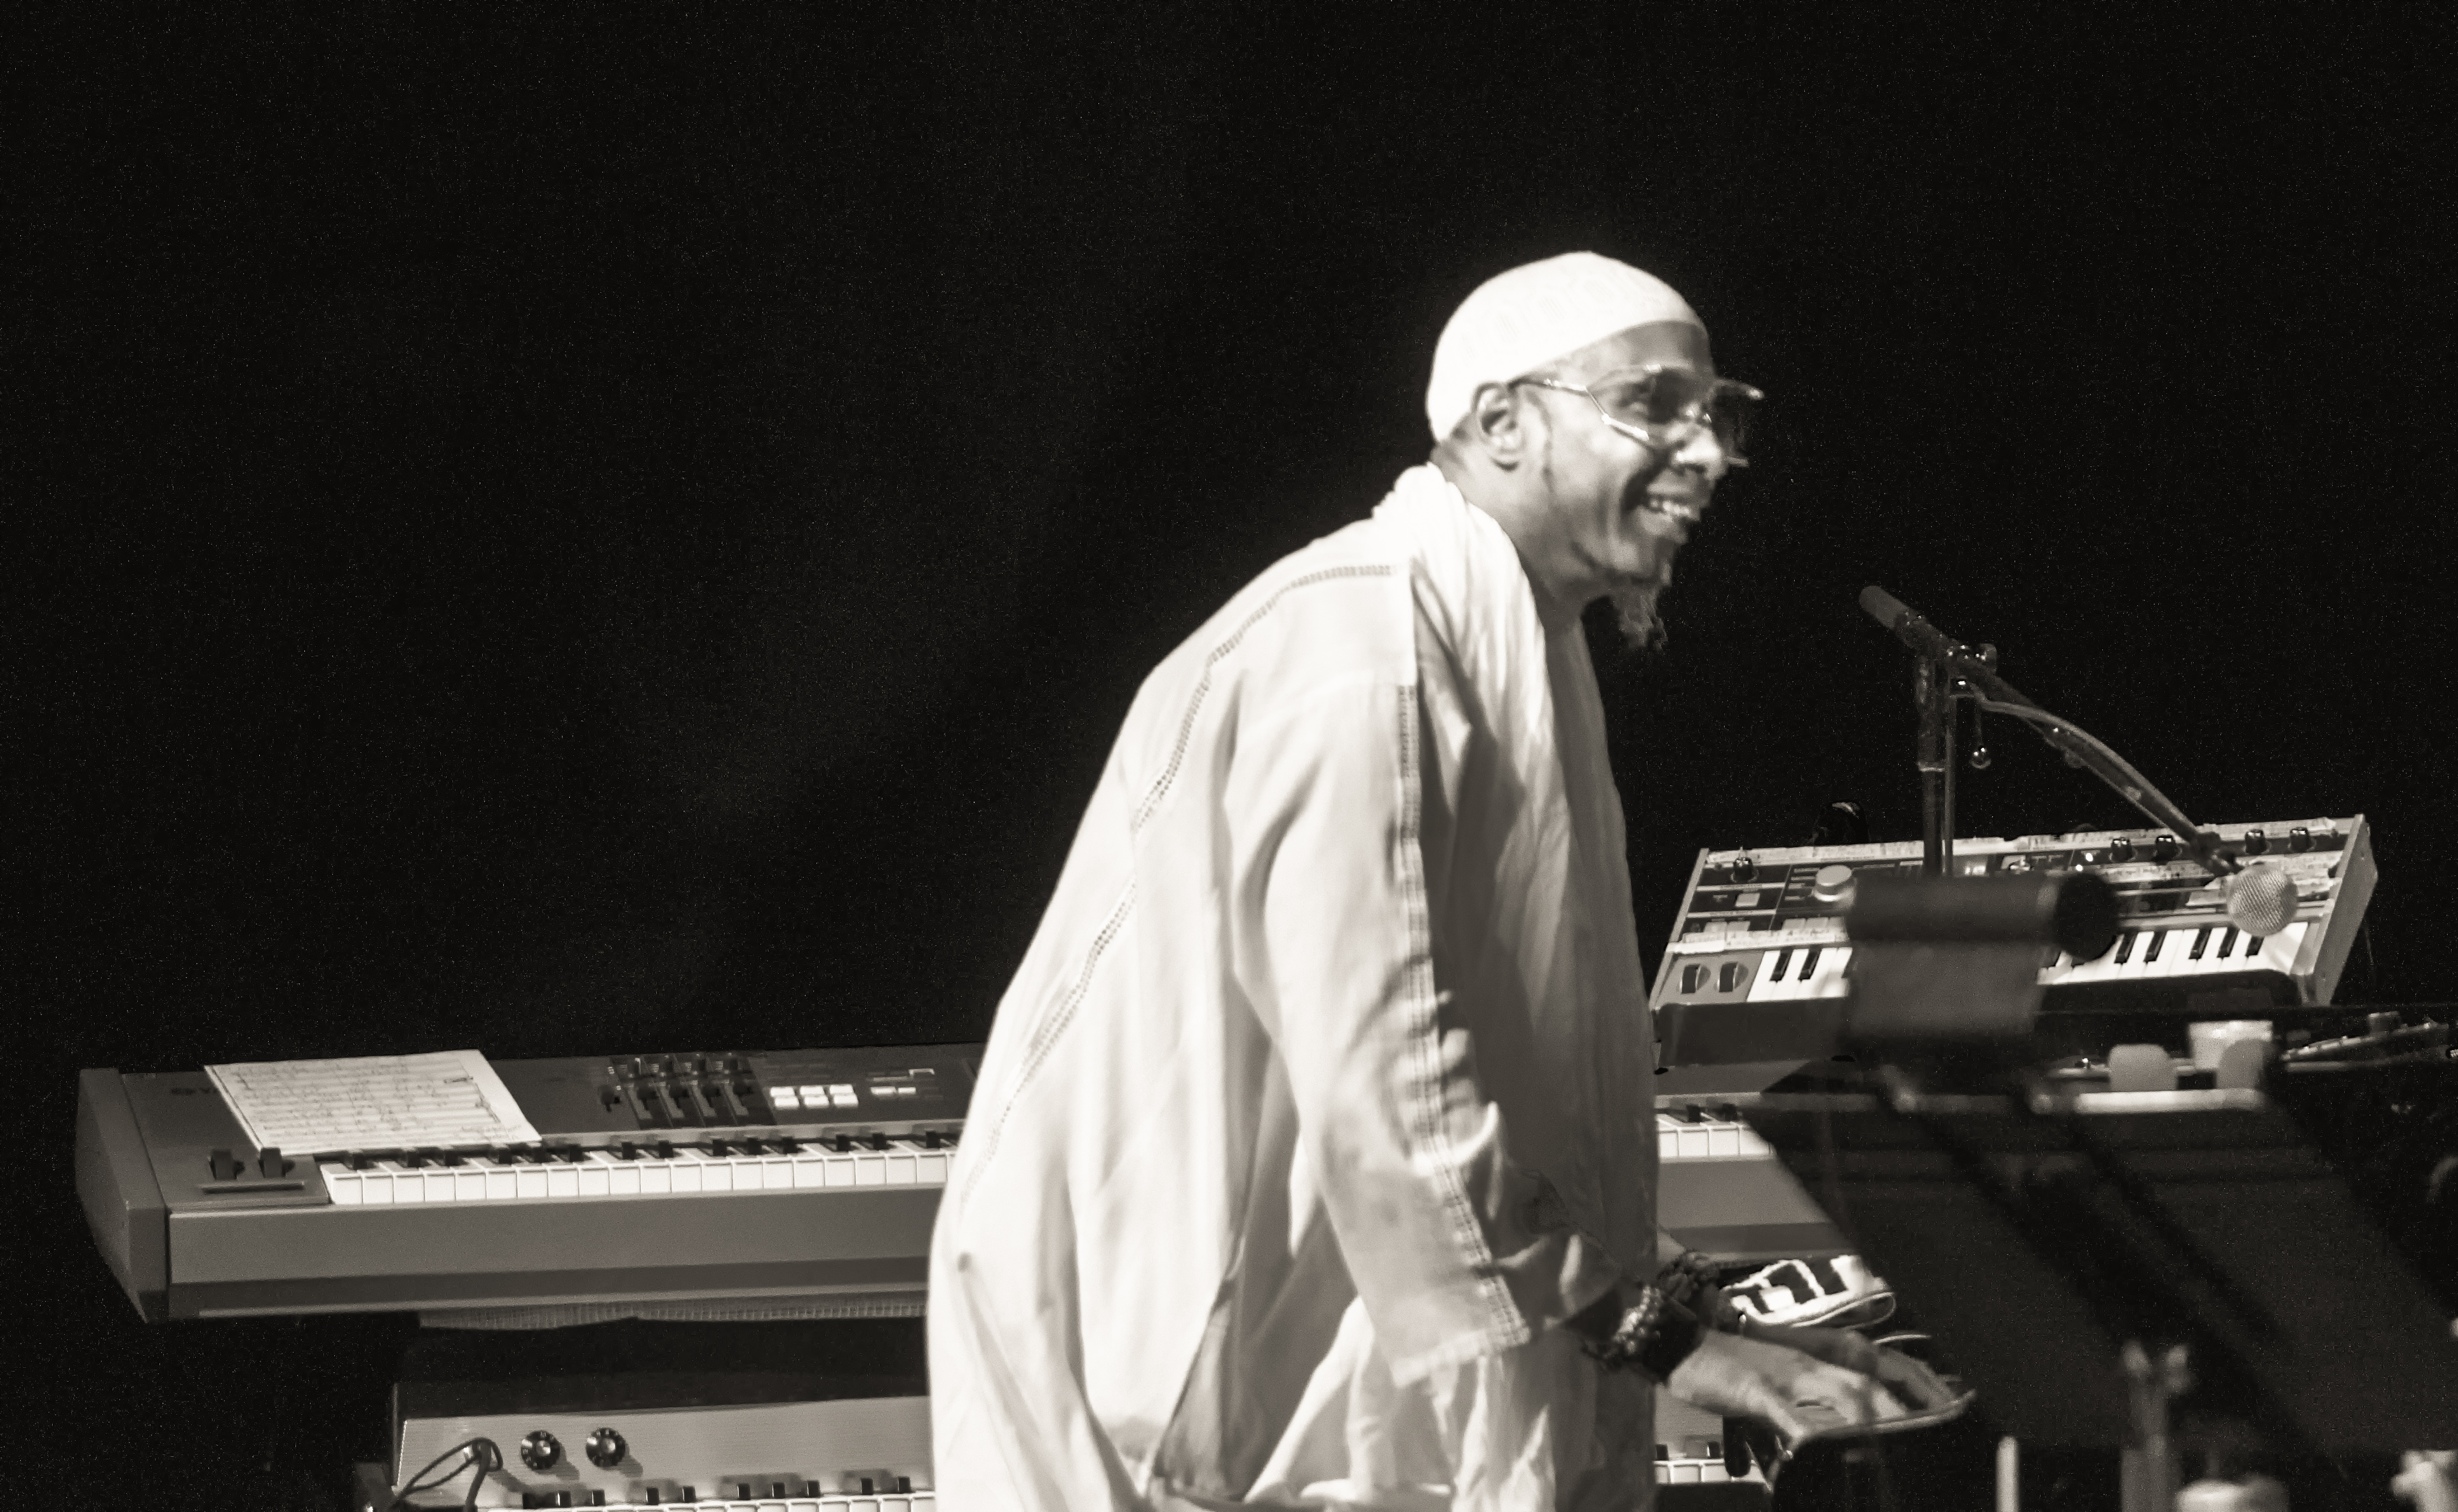 Omar sosa and the afri-lectric experience at the tempe arts center